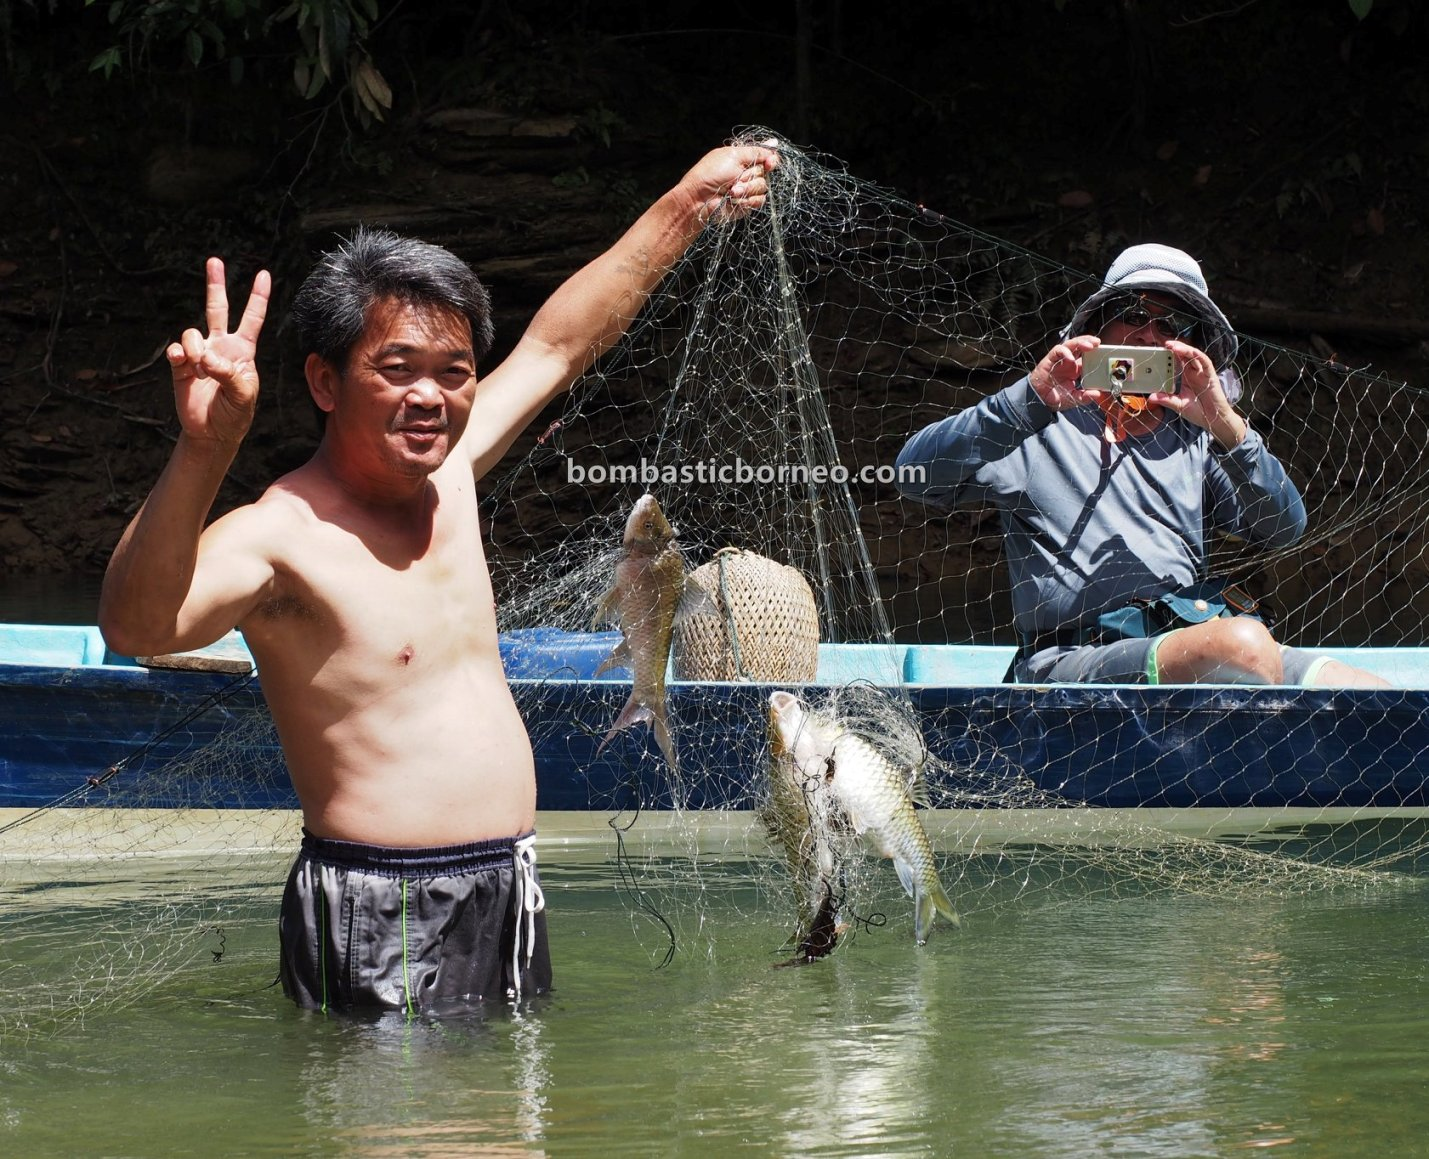 empangan, Sungai Balui, exotic fish, Ikan semah, traditional, memancing ikan, Belaga, Kapit, Tourism, tourist attraction, travel guide, Cross Border, 探索婆罗洲游踪, 砂拉越峇贡水坝, 马来西亚钓鱼之旅,